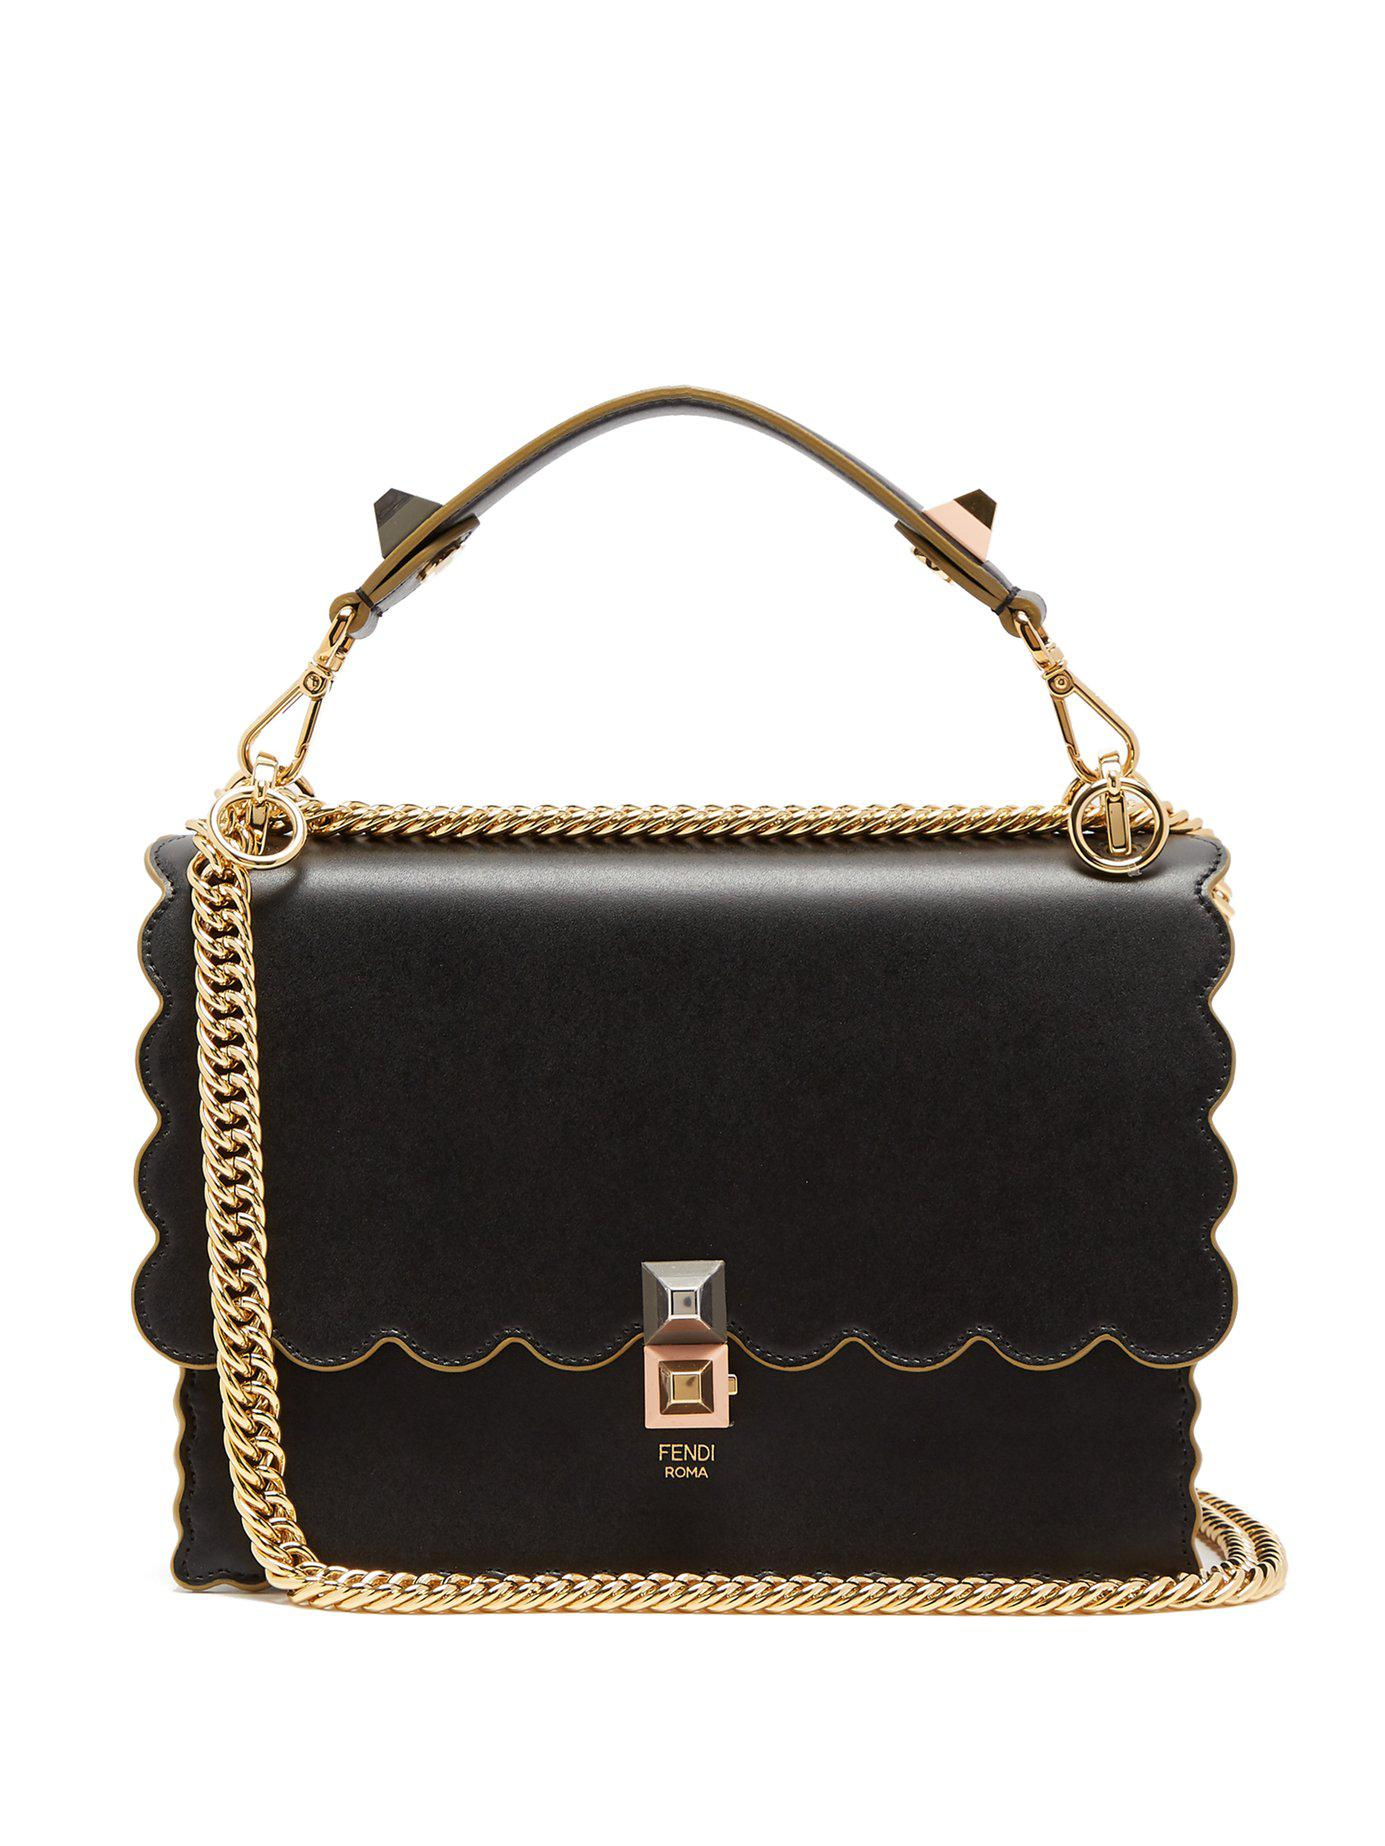 96d6216a0a3e Lyst - Fendi Kan I Leather Shoulder Bag in Black - Save 3%